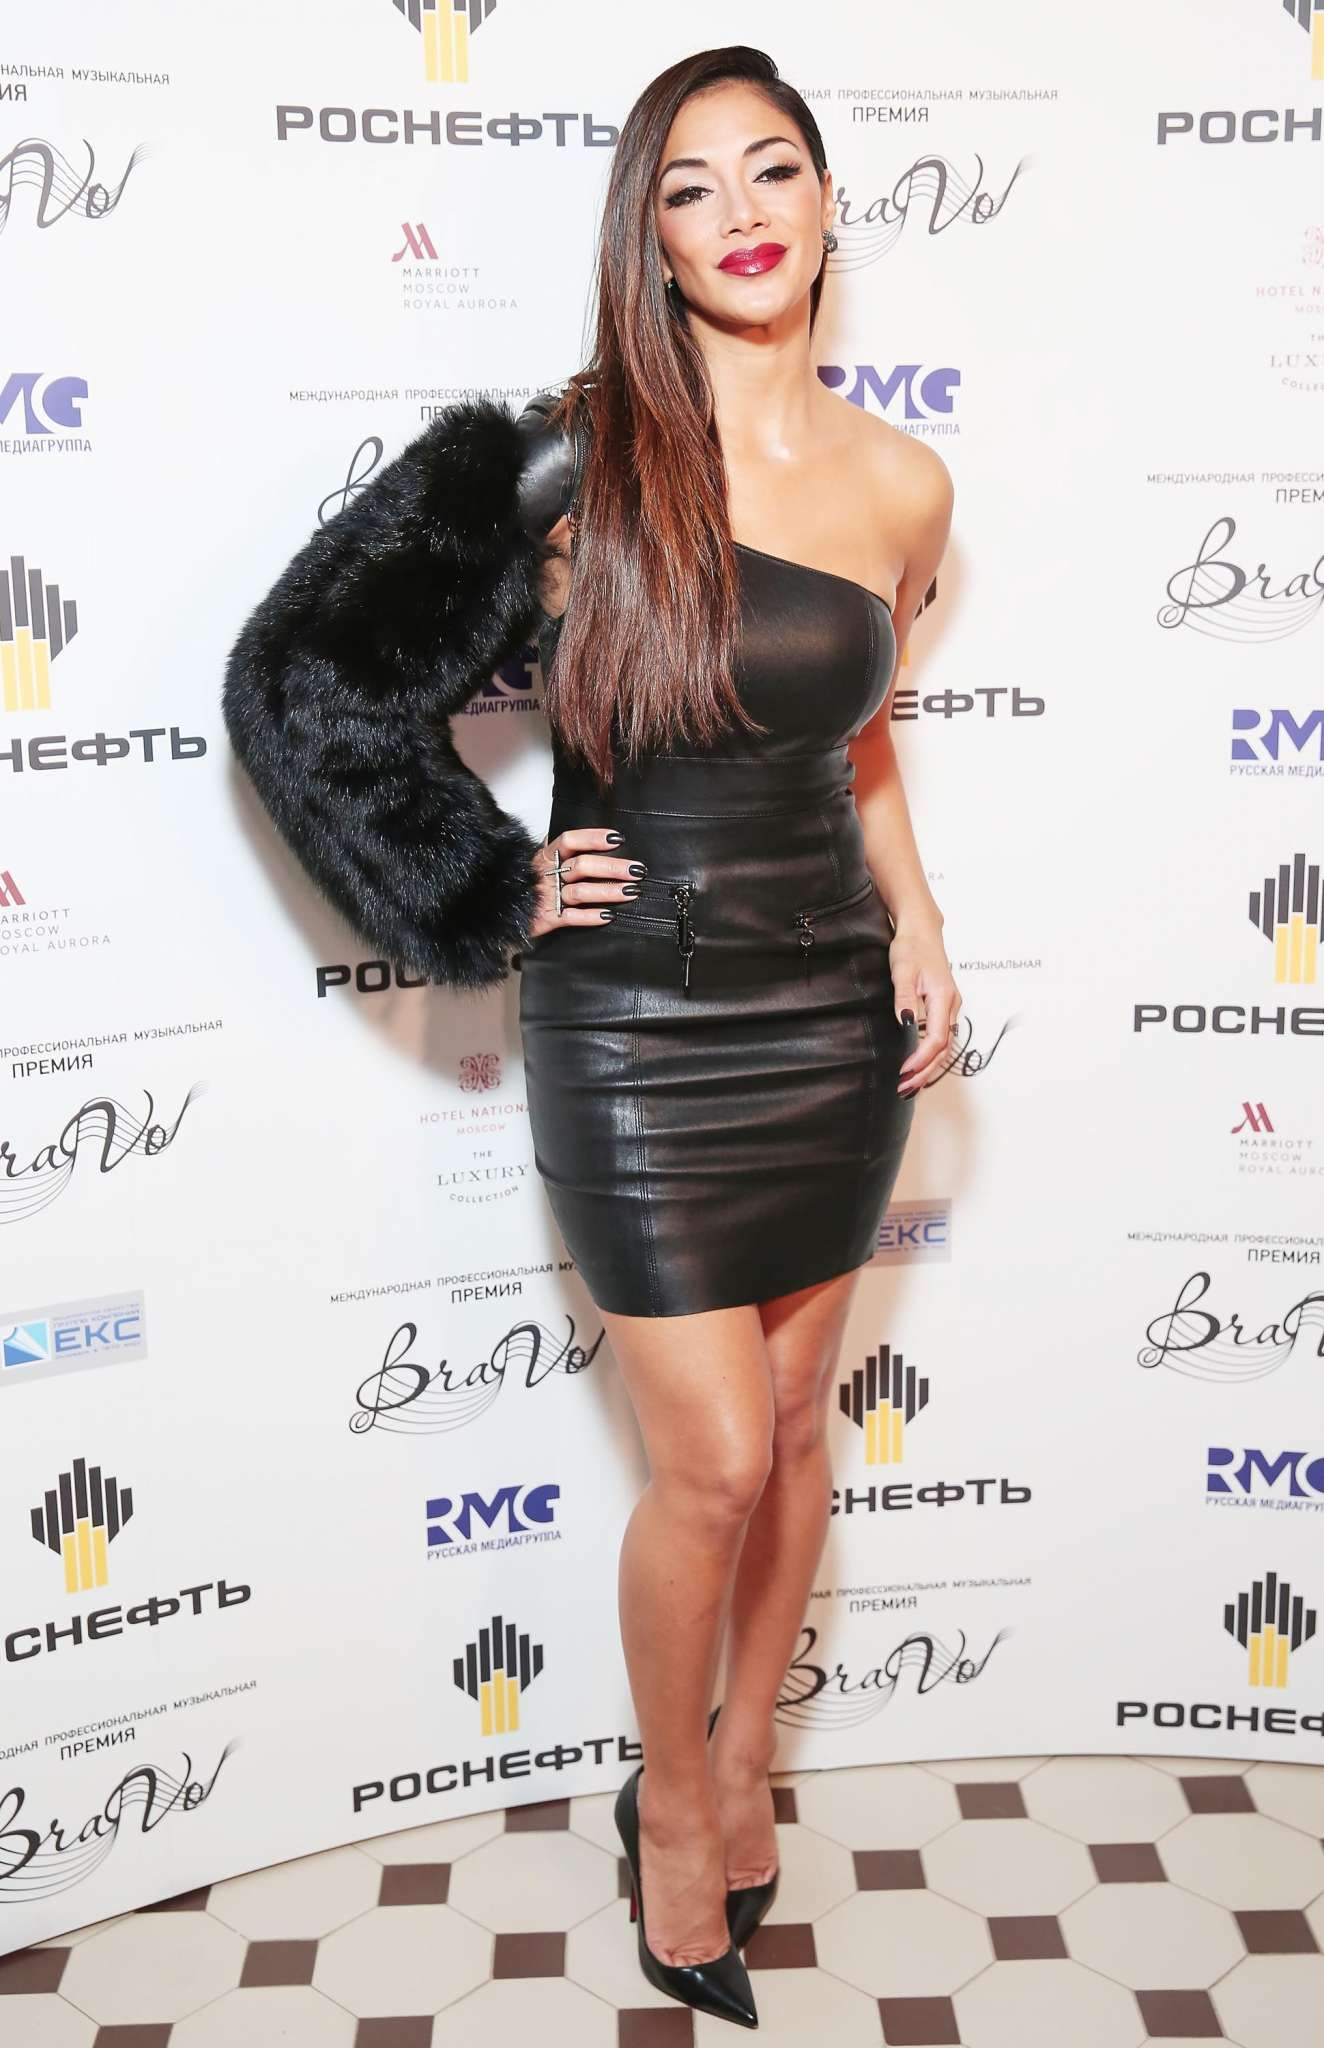 Nicole Scherzinger Wowed In A Black Leather Dress And High Heels Moscow